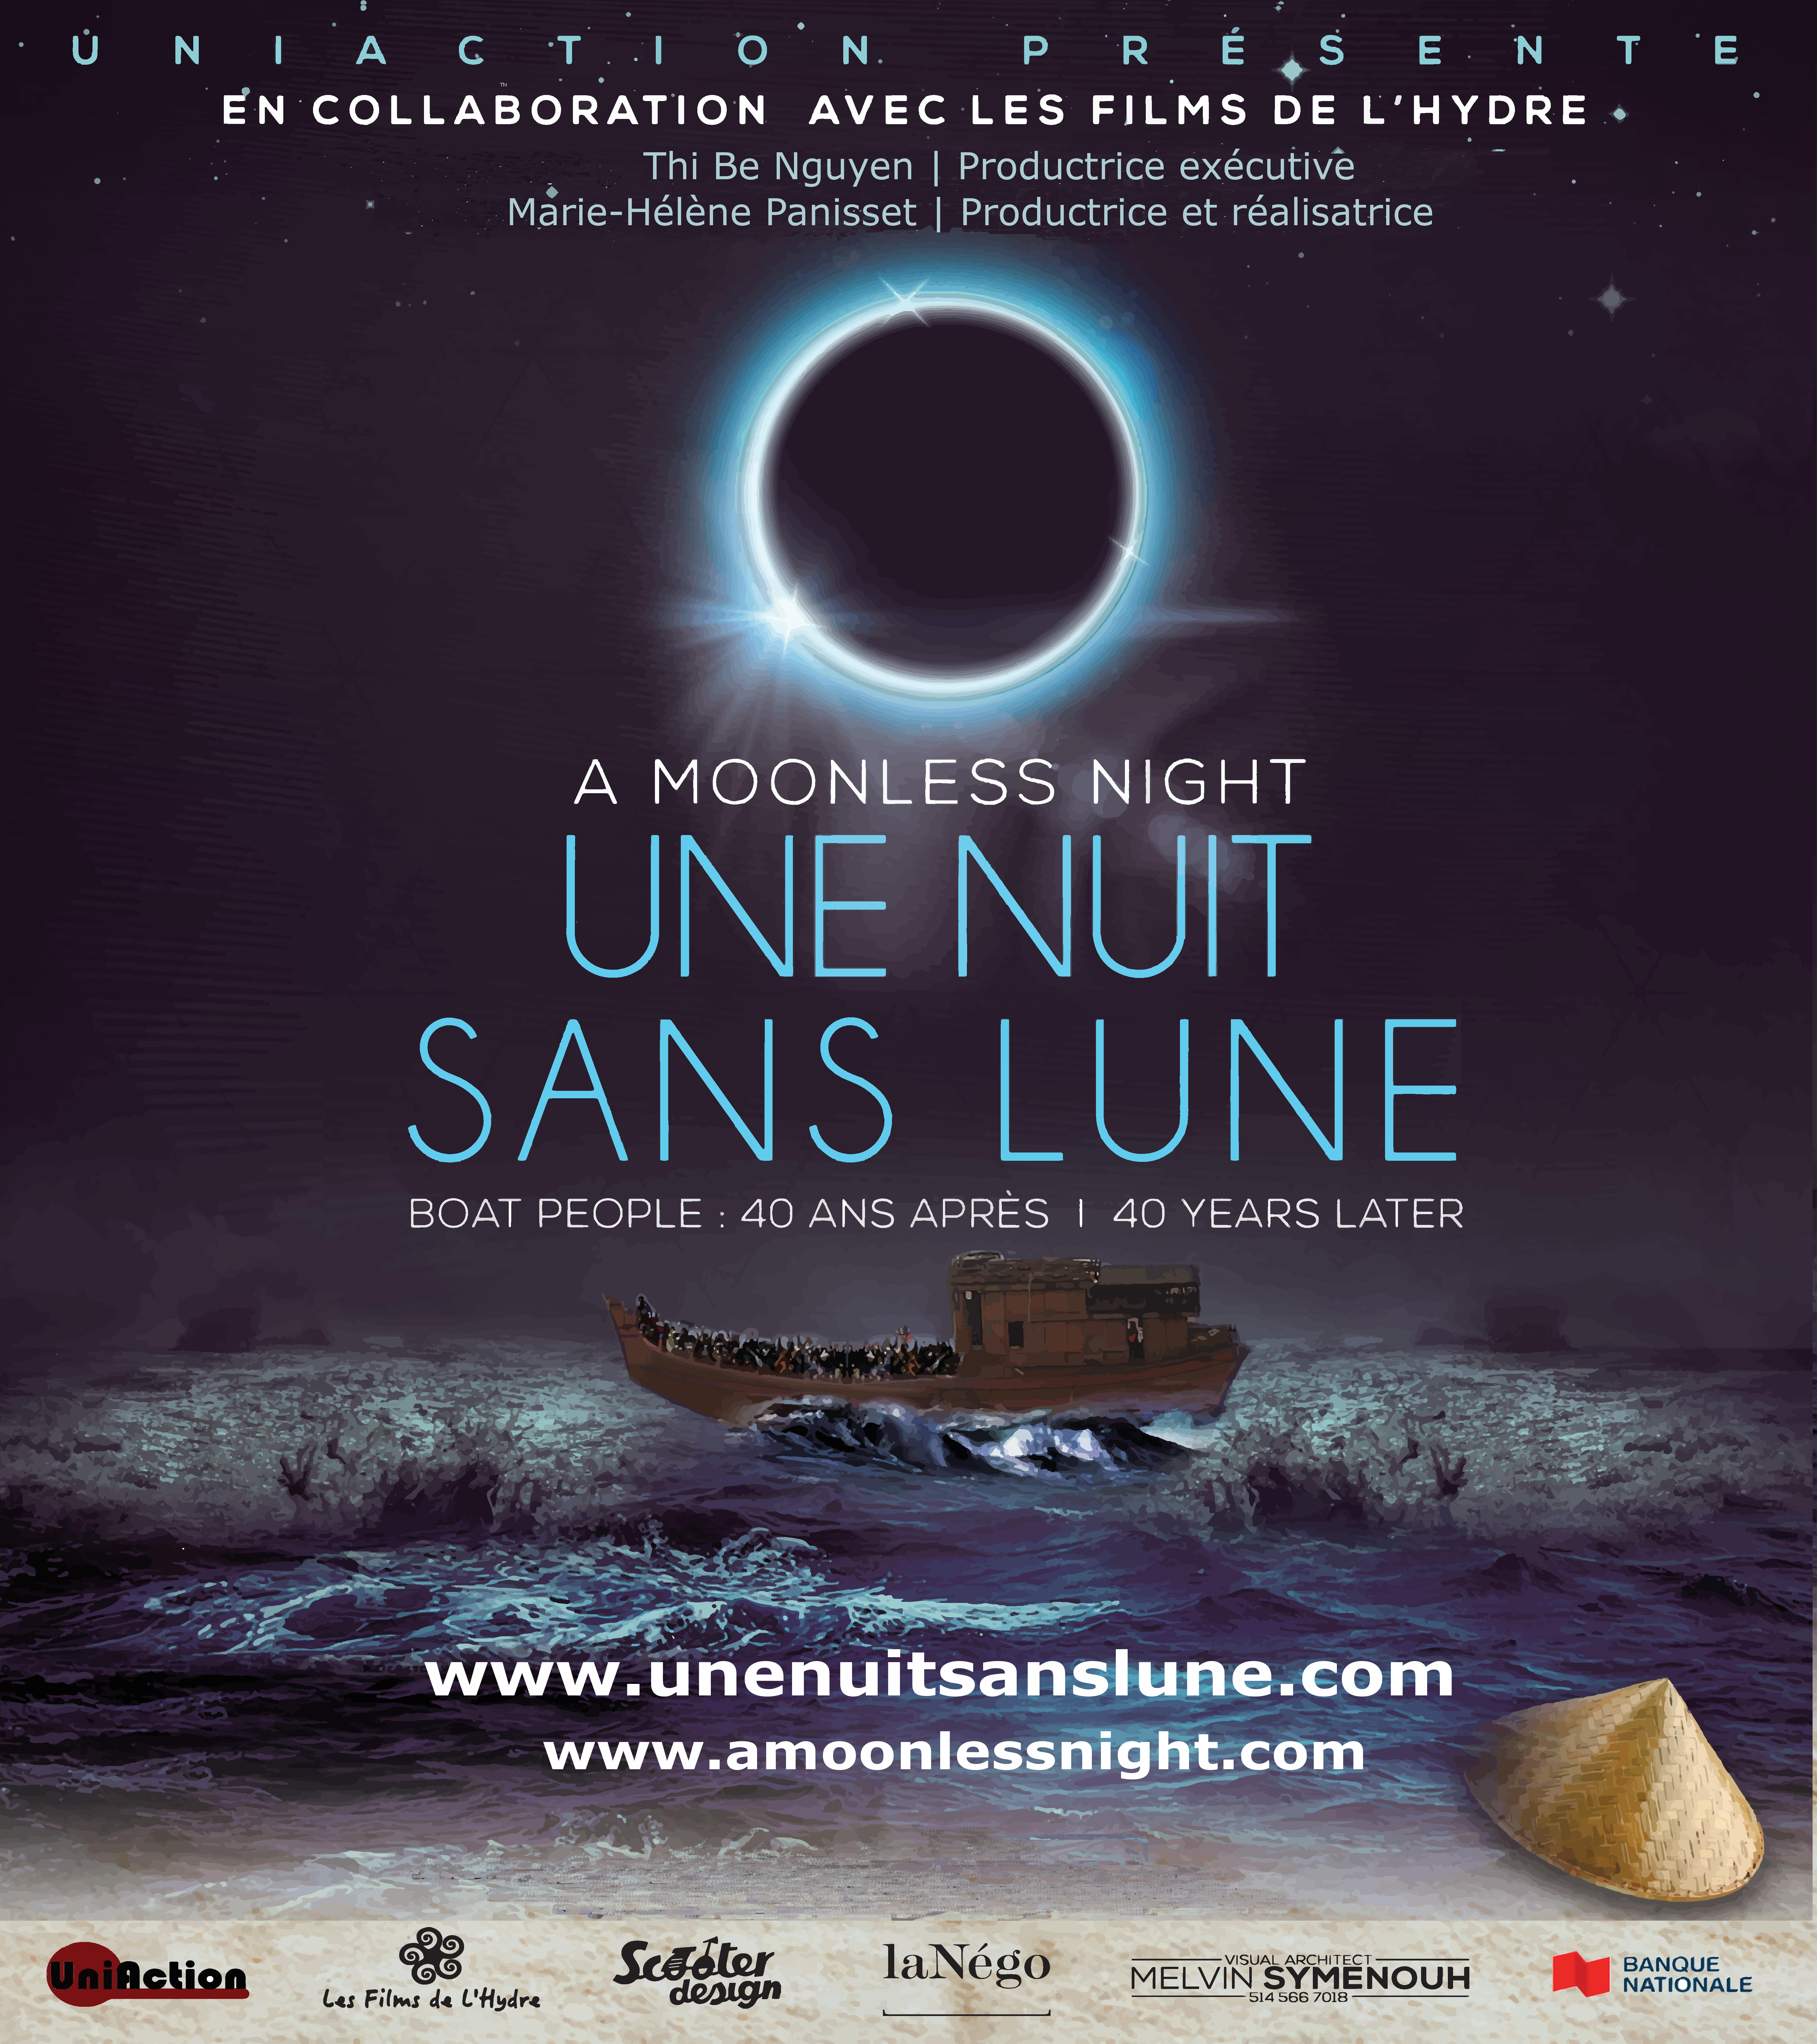 Une nuit sans lune Stickers and Magnets